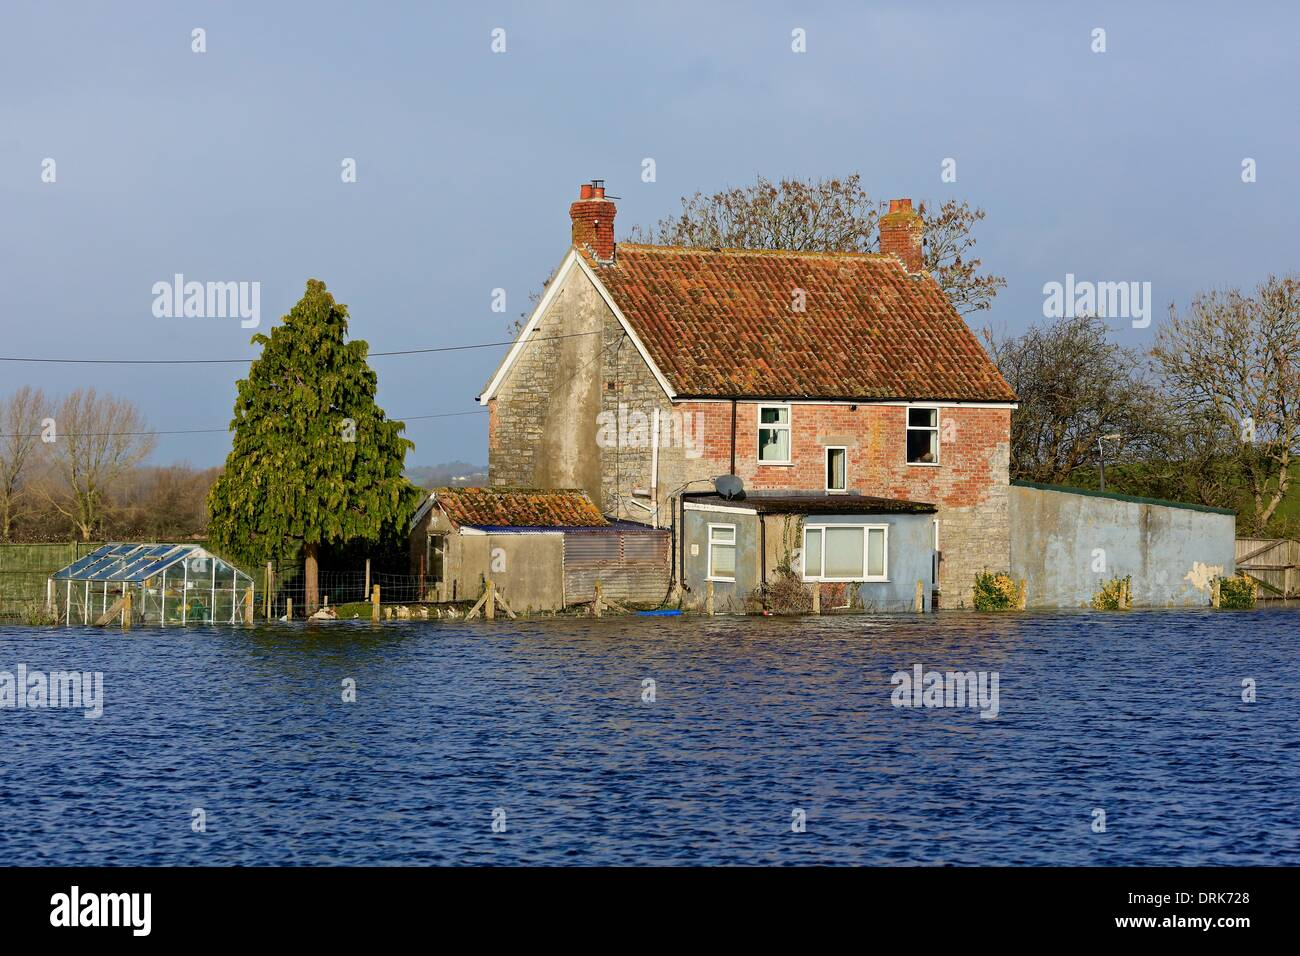 Long Load, Somerset Levels, Somerset, UK. 28th January 2014. Houses and farmland remain under water as warnings are issued saying further flooding may be on the way. Credit:  Tom Corban/Alamy Live News - Stock Image